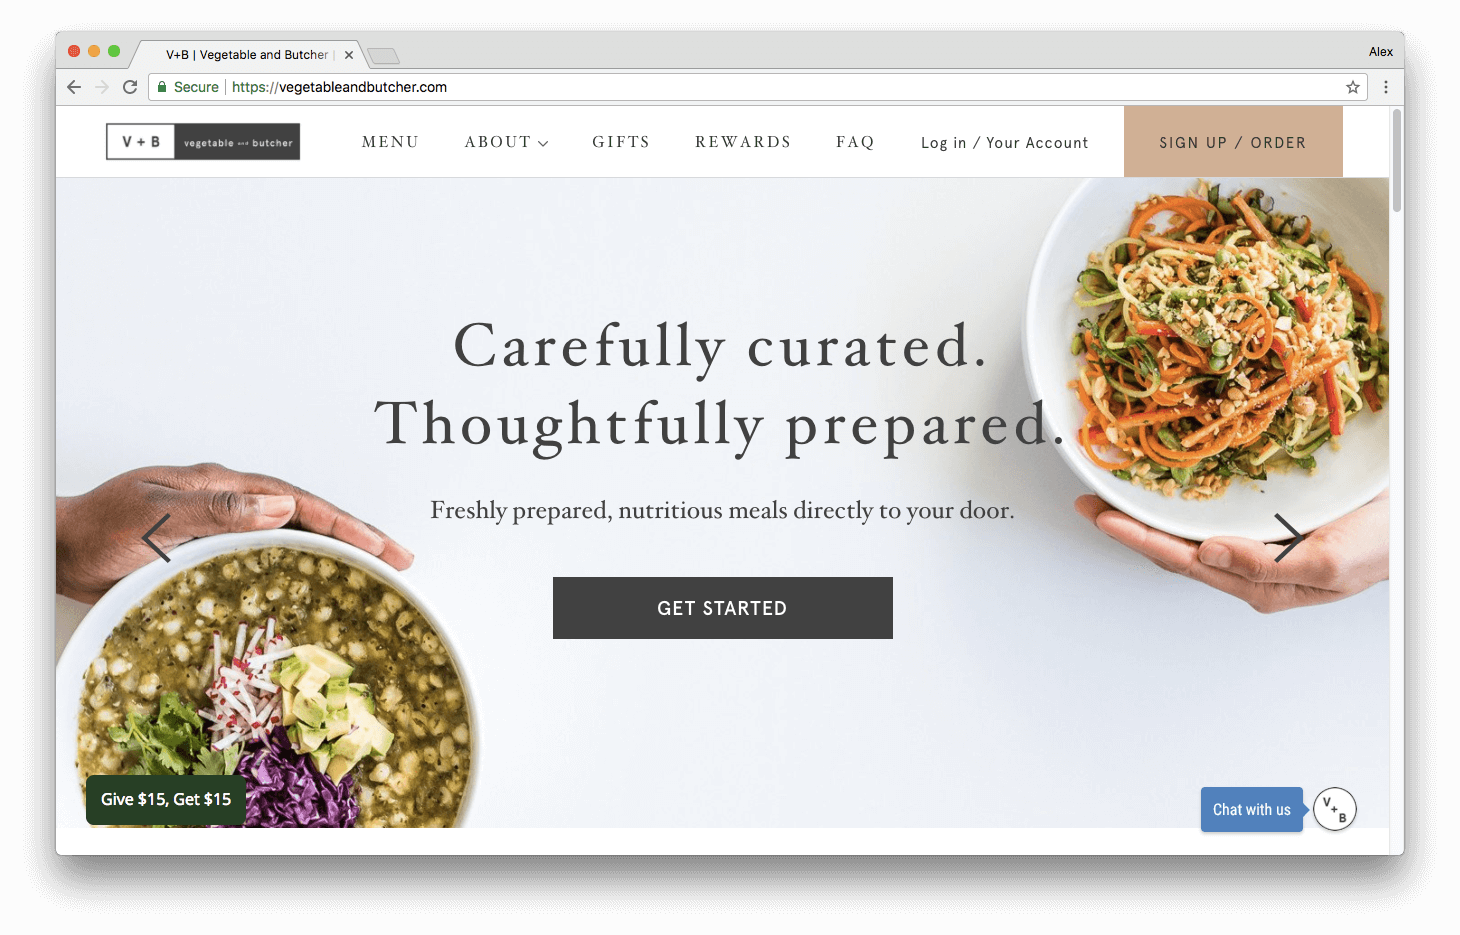 best-mobile-experiences-vegetable-and-butcher-desktop.png